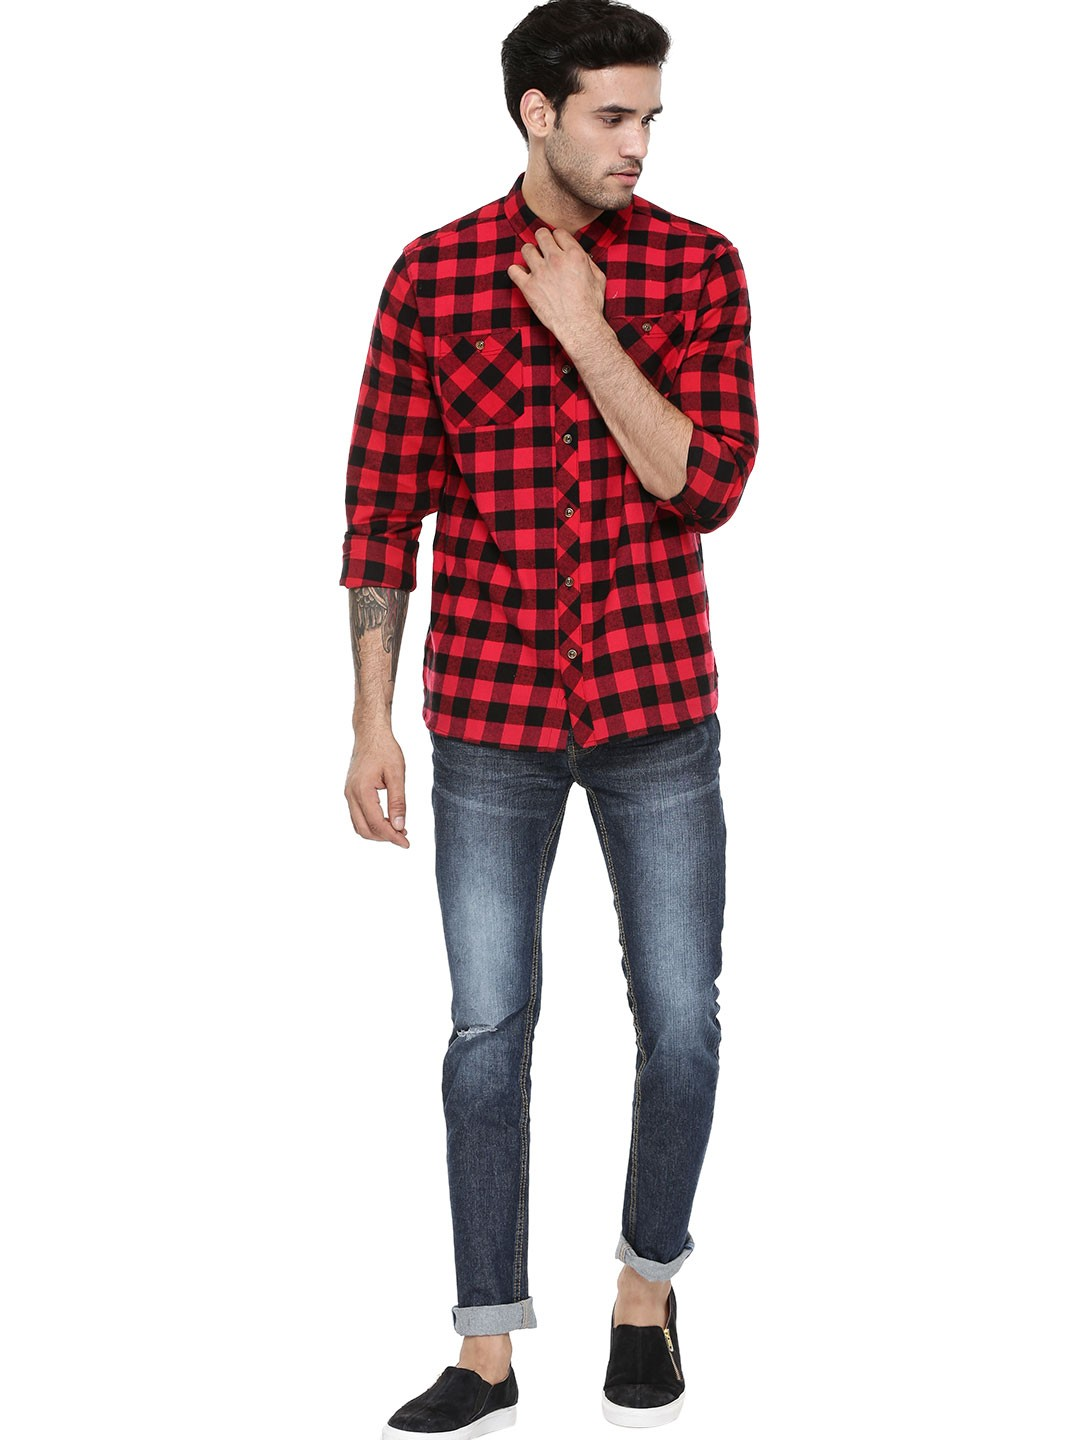 Buy buffalo check shirt for men men 39 s red casual shirts for Best shirts for men